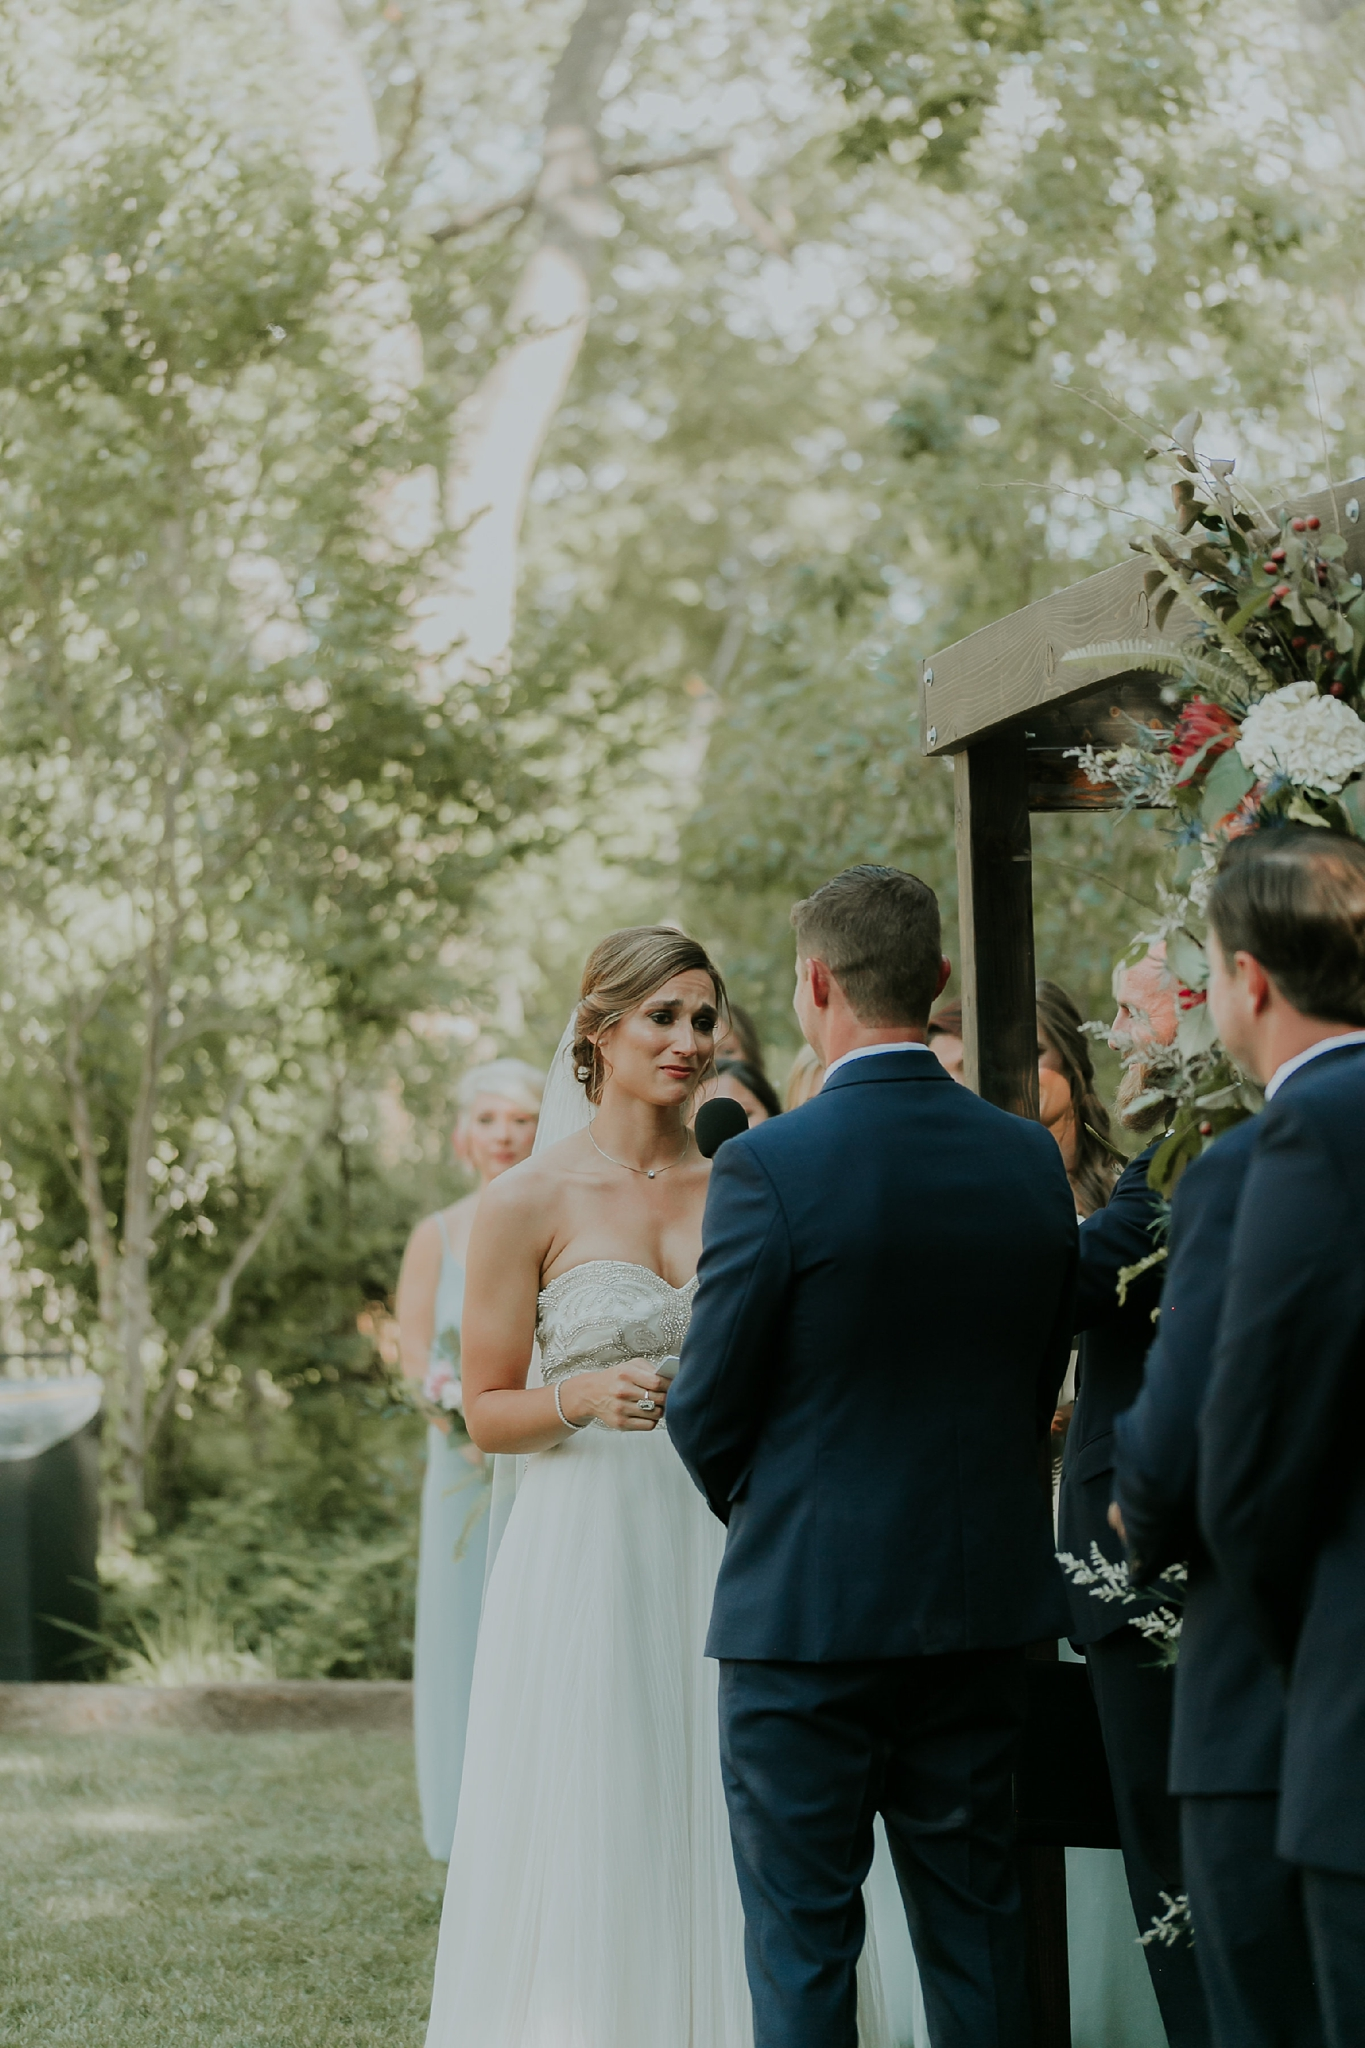 Alicia+lucia+photography+-+albuquerque+wedding+photographer+-+santa+fe+wedding+photography+-+new+mexico+wedding+photographer+-+new+mexico+wedding+-+wedding+vows+-+writing+your+own+vows+-+wedding+inspo_0047.jpg